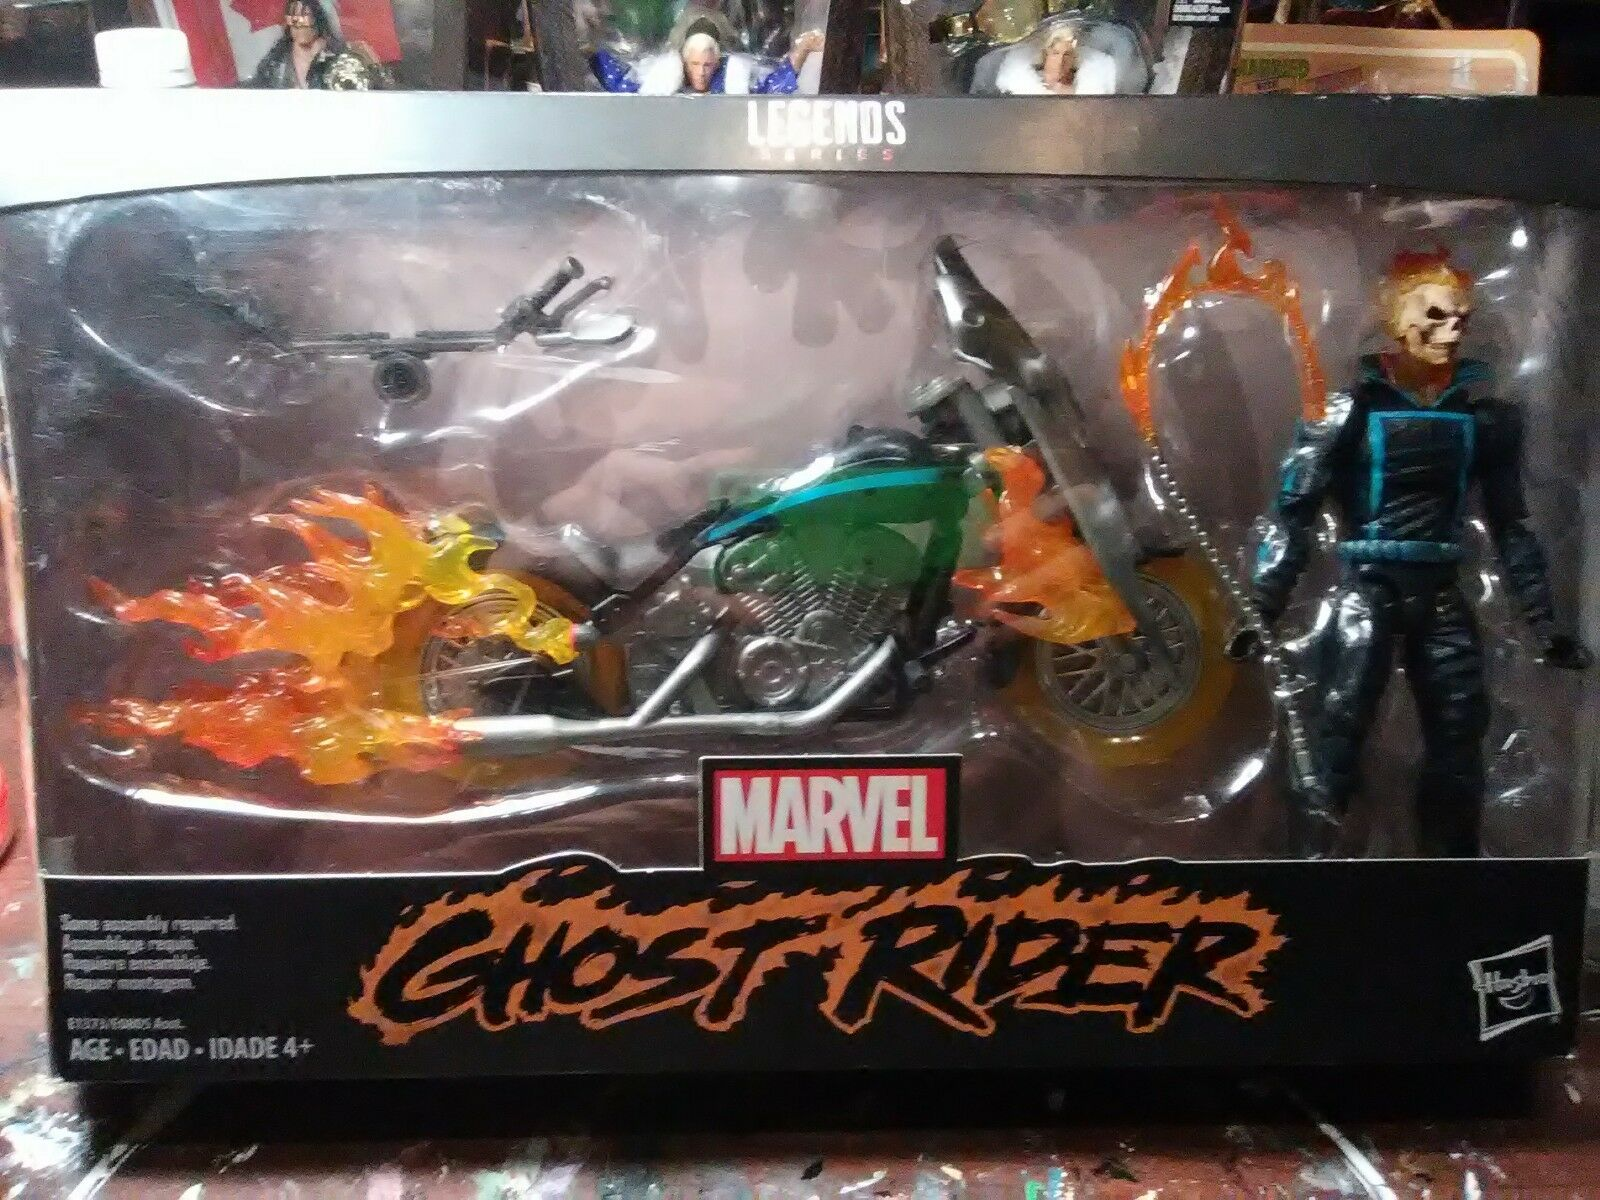 Marvel legends series ghost rider